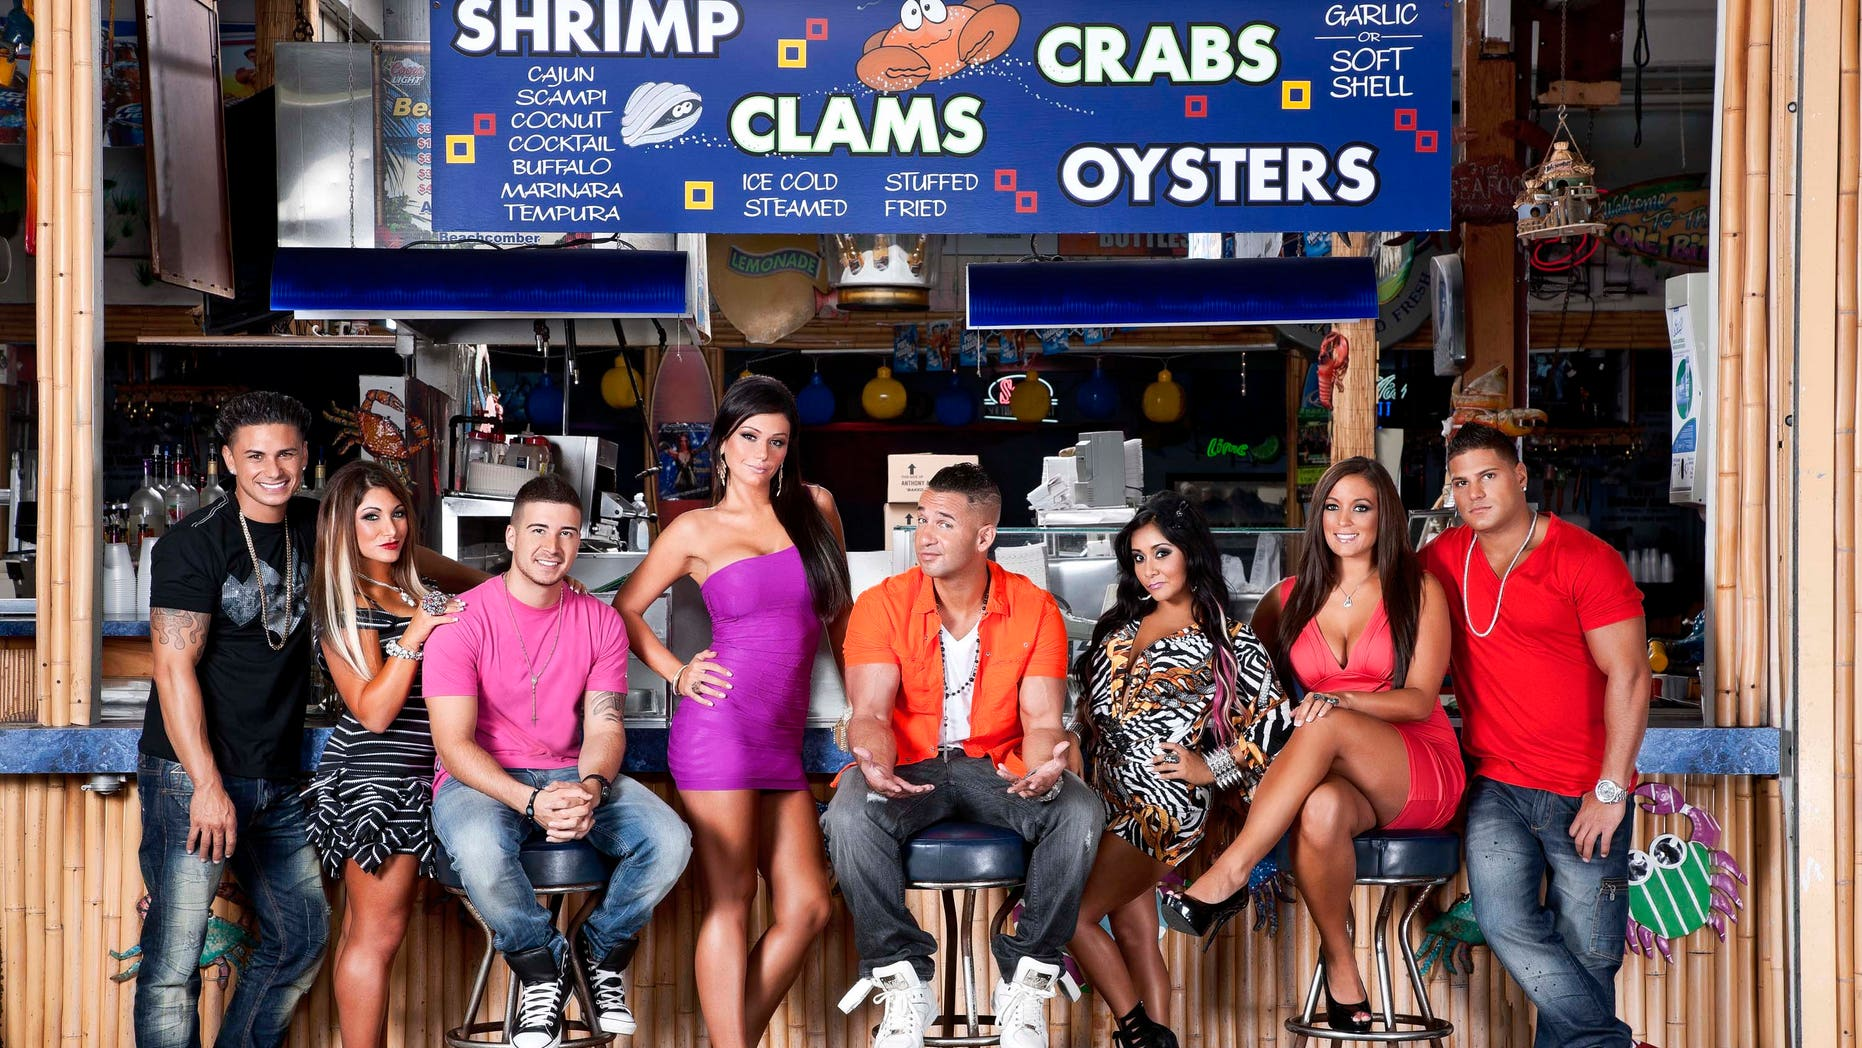 """This undated image released by MTV shows the cast of """"Jersey Shore,"""" from left, Paul """" DJ Pauly D"""" Delvecchio, Deena Nicole Cortese,  Vinny Guadagnino, Jenni """"JWOWW"""" Farley,  Mike """"The Situation"""" Sorrentino, Nicole """"Snooki"""" Polizzi,  Sammi """"Sweetheart"""" Giancola and Ronnie Magro in Seaside Heights, N.J. MTV gave the last call for """"Jersey Shore"""" on Thursday, Aug. 30, saying the raucous reality show will conclude after its upcoming sixth season, which begins Oct. 4. The series, whose roots lay in a party house in Seaside Heights, N.J., gave rise to such stars as Nicole """"Snooki"""" Polizzi and Mike """"The Situation"""" Sorrentino, while popularizing the terms """"guido"""" and """"guidette.""""  (AP Photo/MTV, Ian Spanier Photography)"""